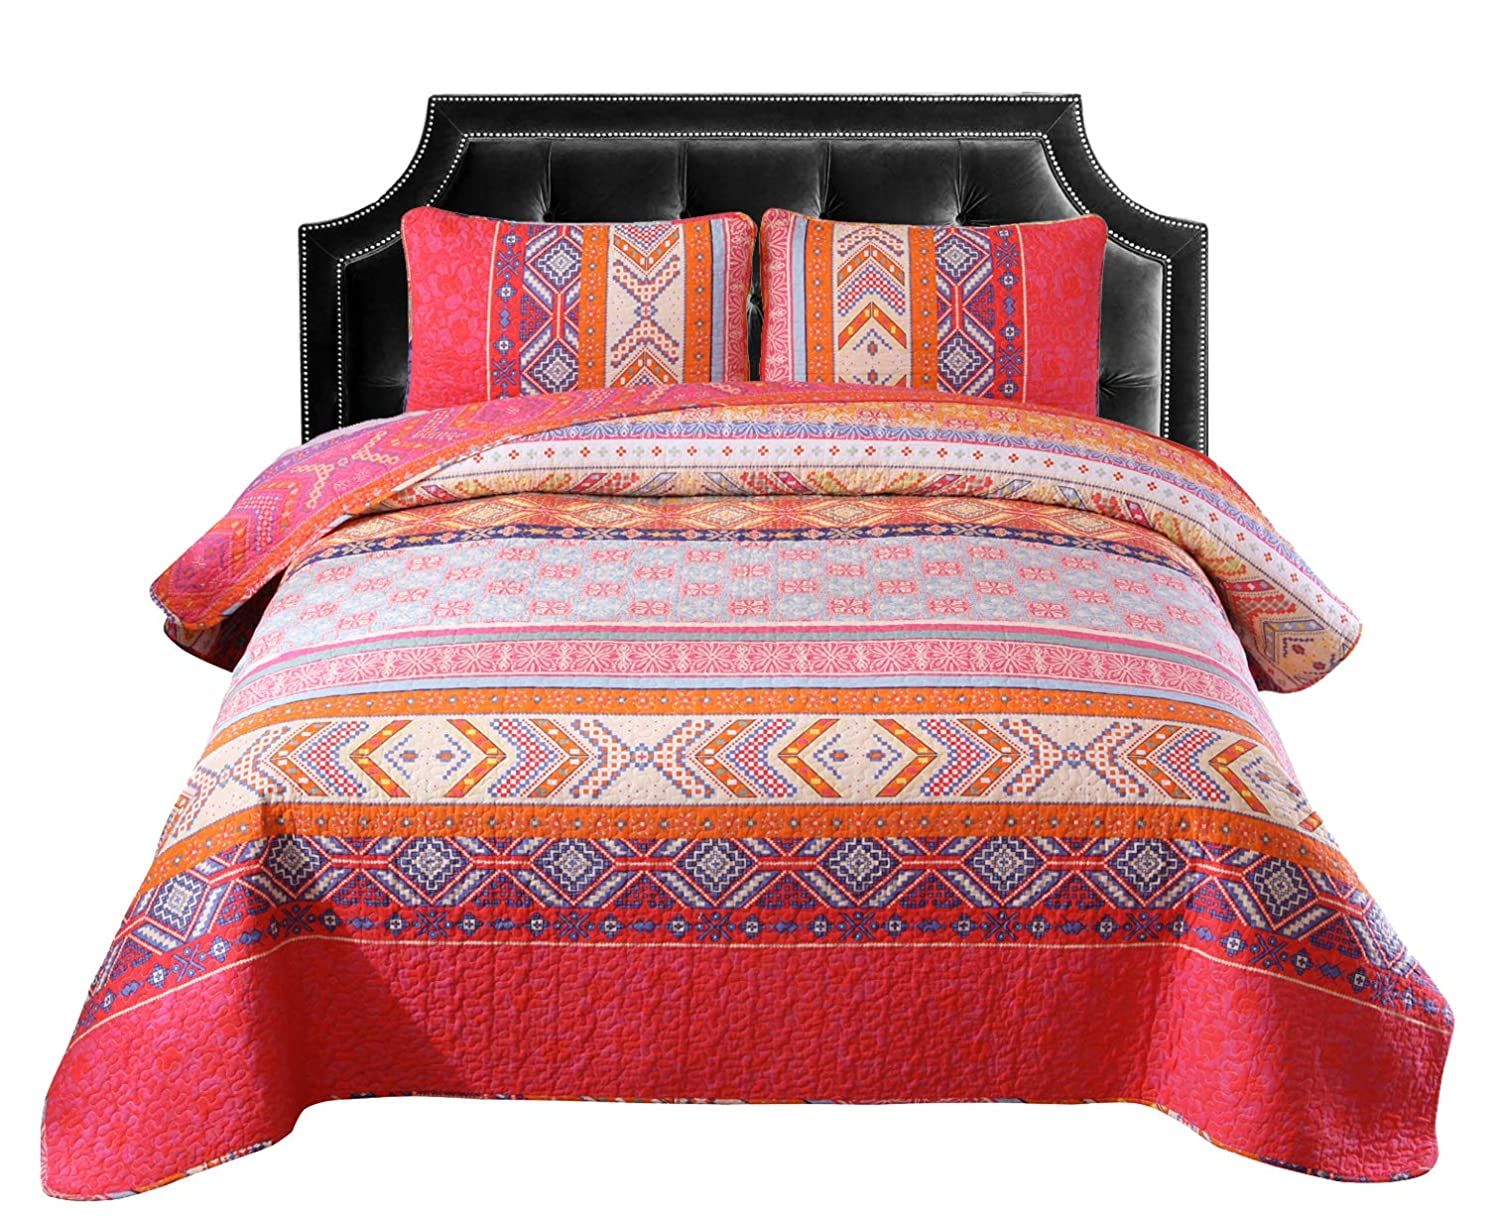 Exclusivo Mezcla 100% Cotton 3-Piece Multicolored Boho Full/Queen Size Quilt Set as Bedspread/Coverlet/Bed Cover- Lightweight, Reversible& Decorative